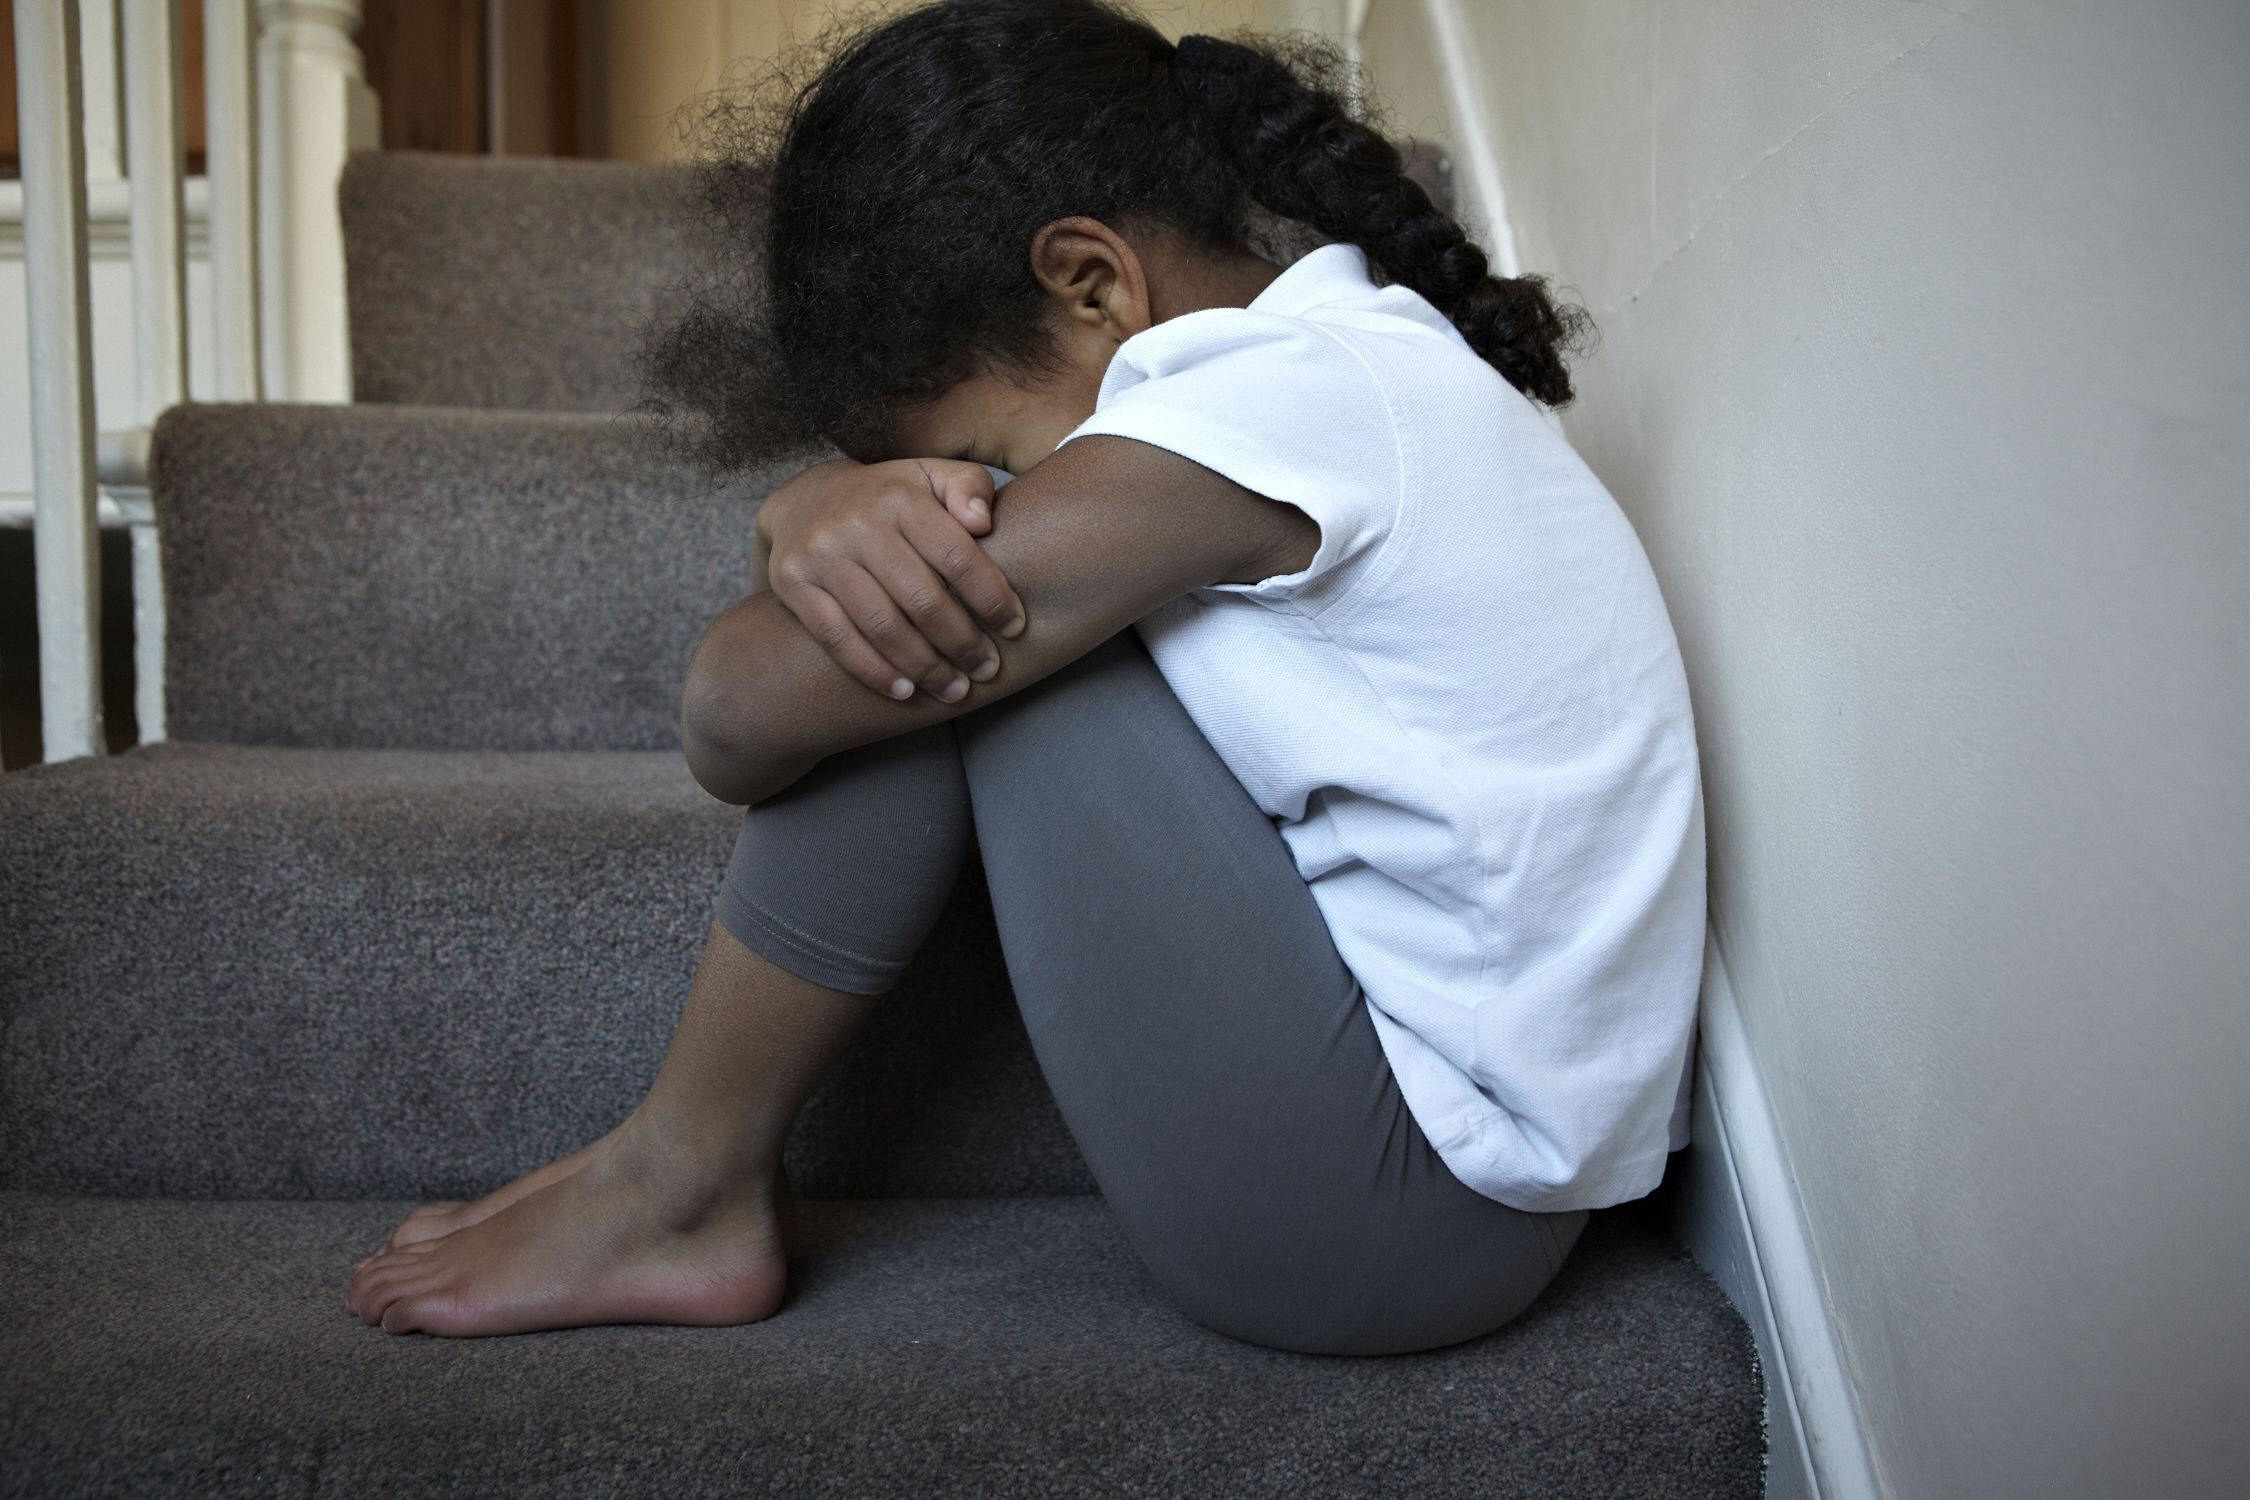 REPORTS RISE: Nationally there were 16,939 child cruelty and neglect offences recorded in 2017/18, up from 7,965 in 2012/13  Jon Challicom/NSPCC/PA